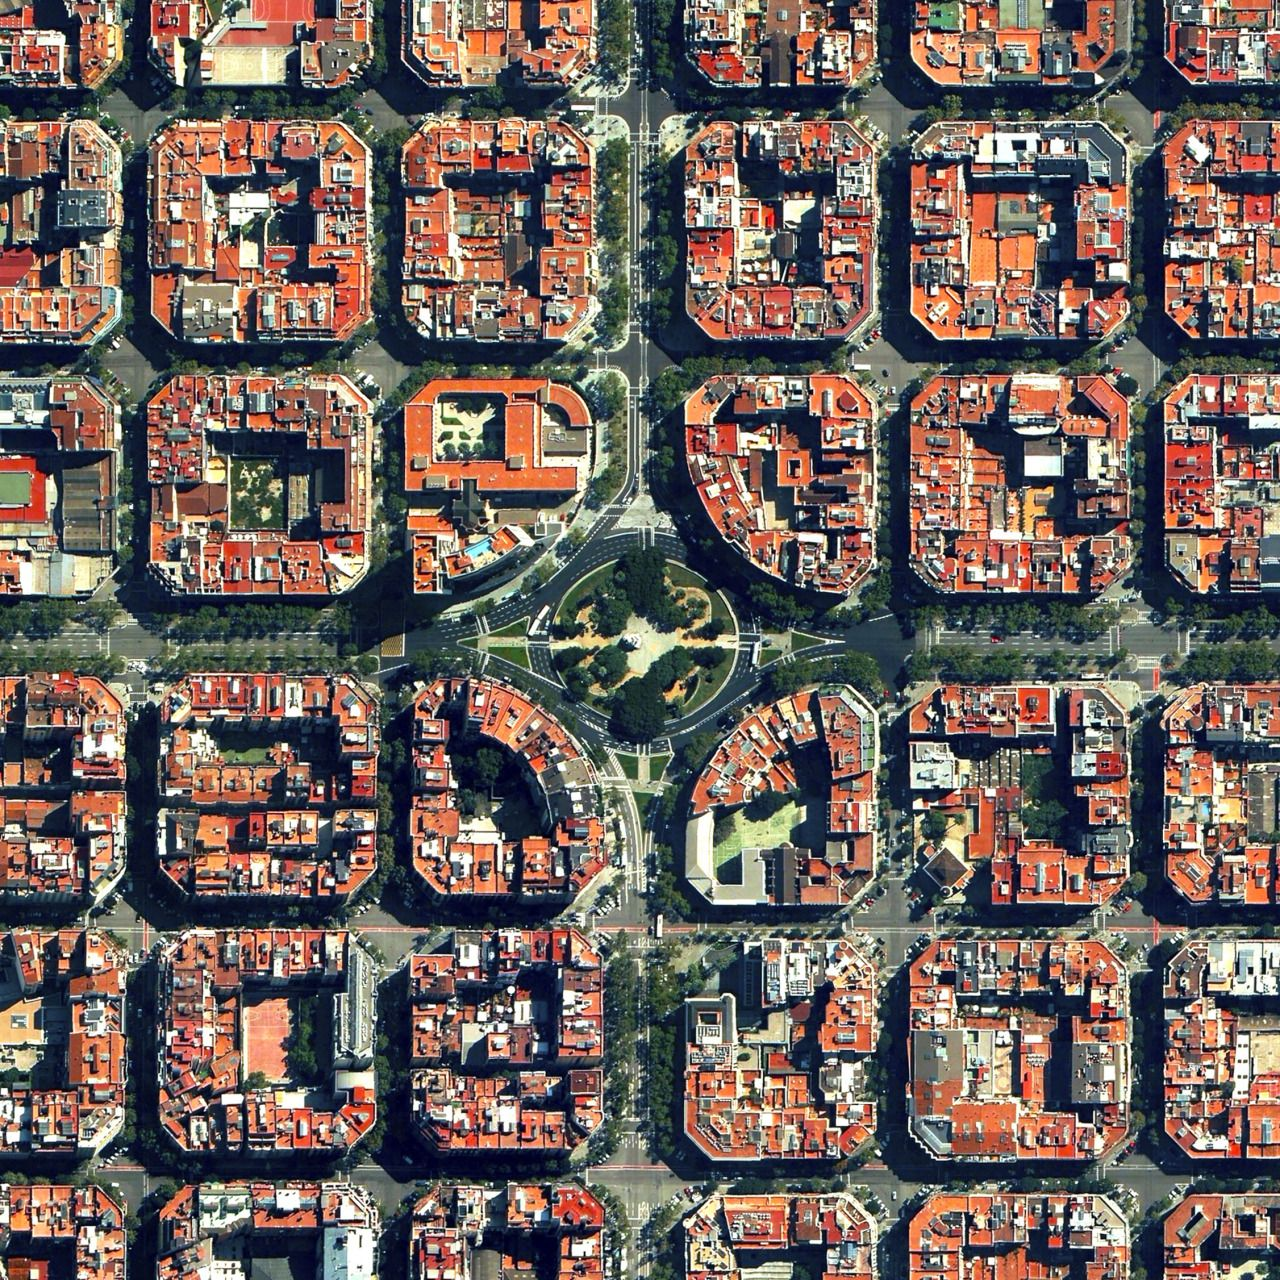 Eixample District In Barcelona Urban Patterns Pinterest Site - Barcelona map eixample district